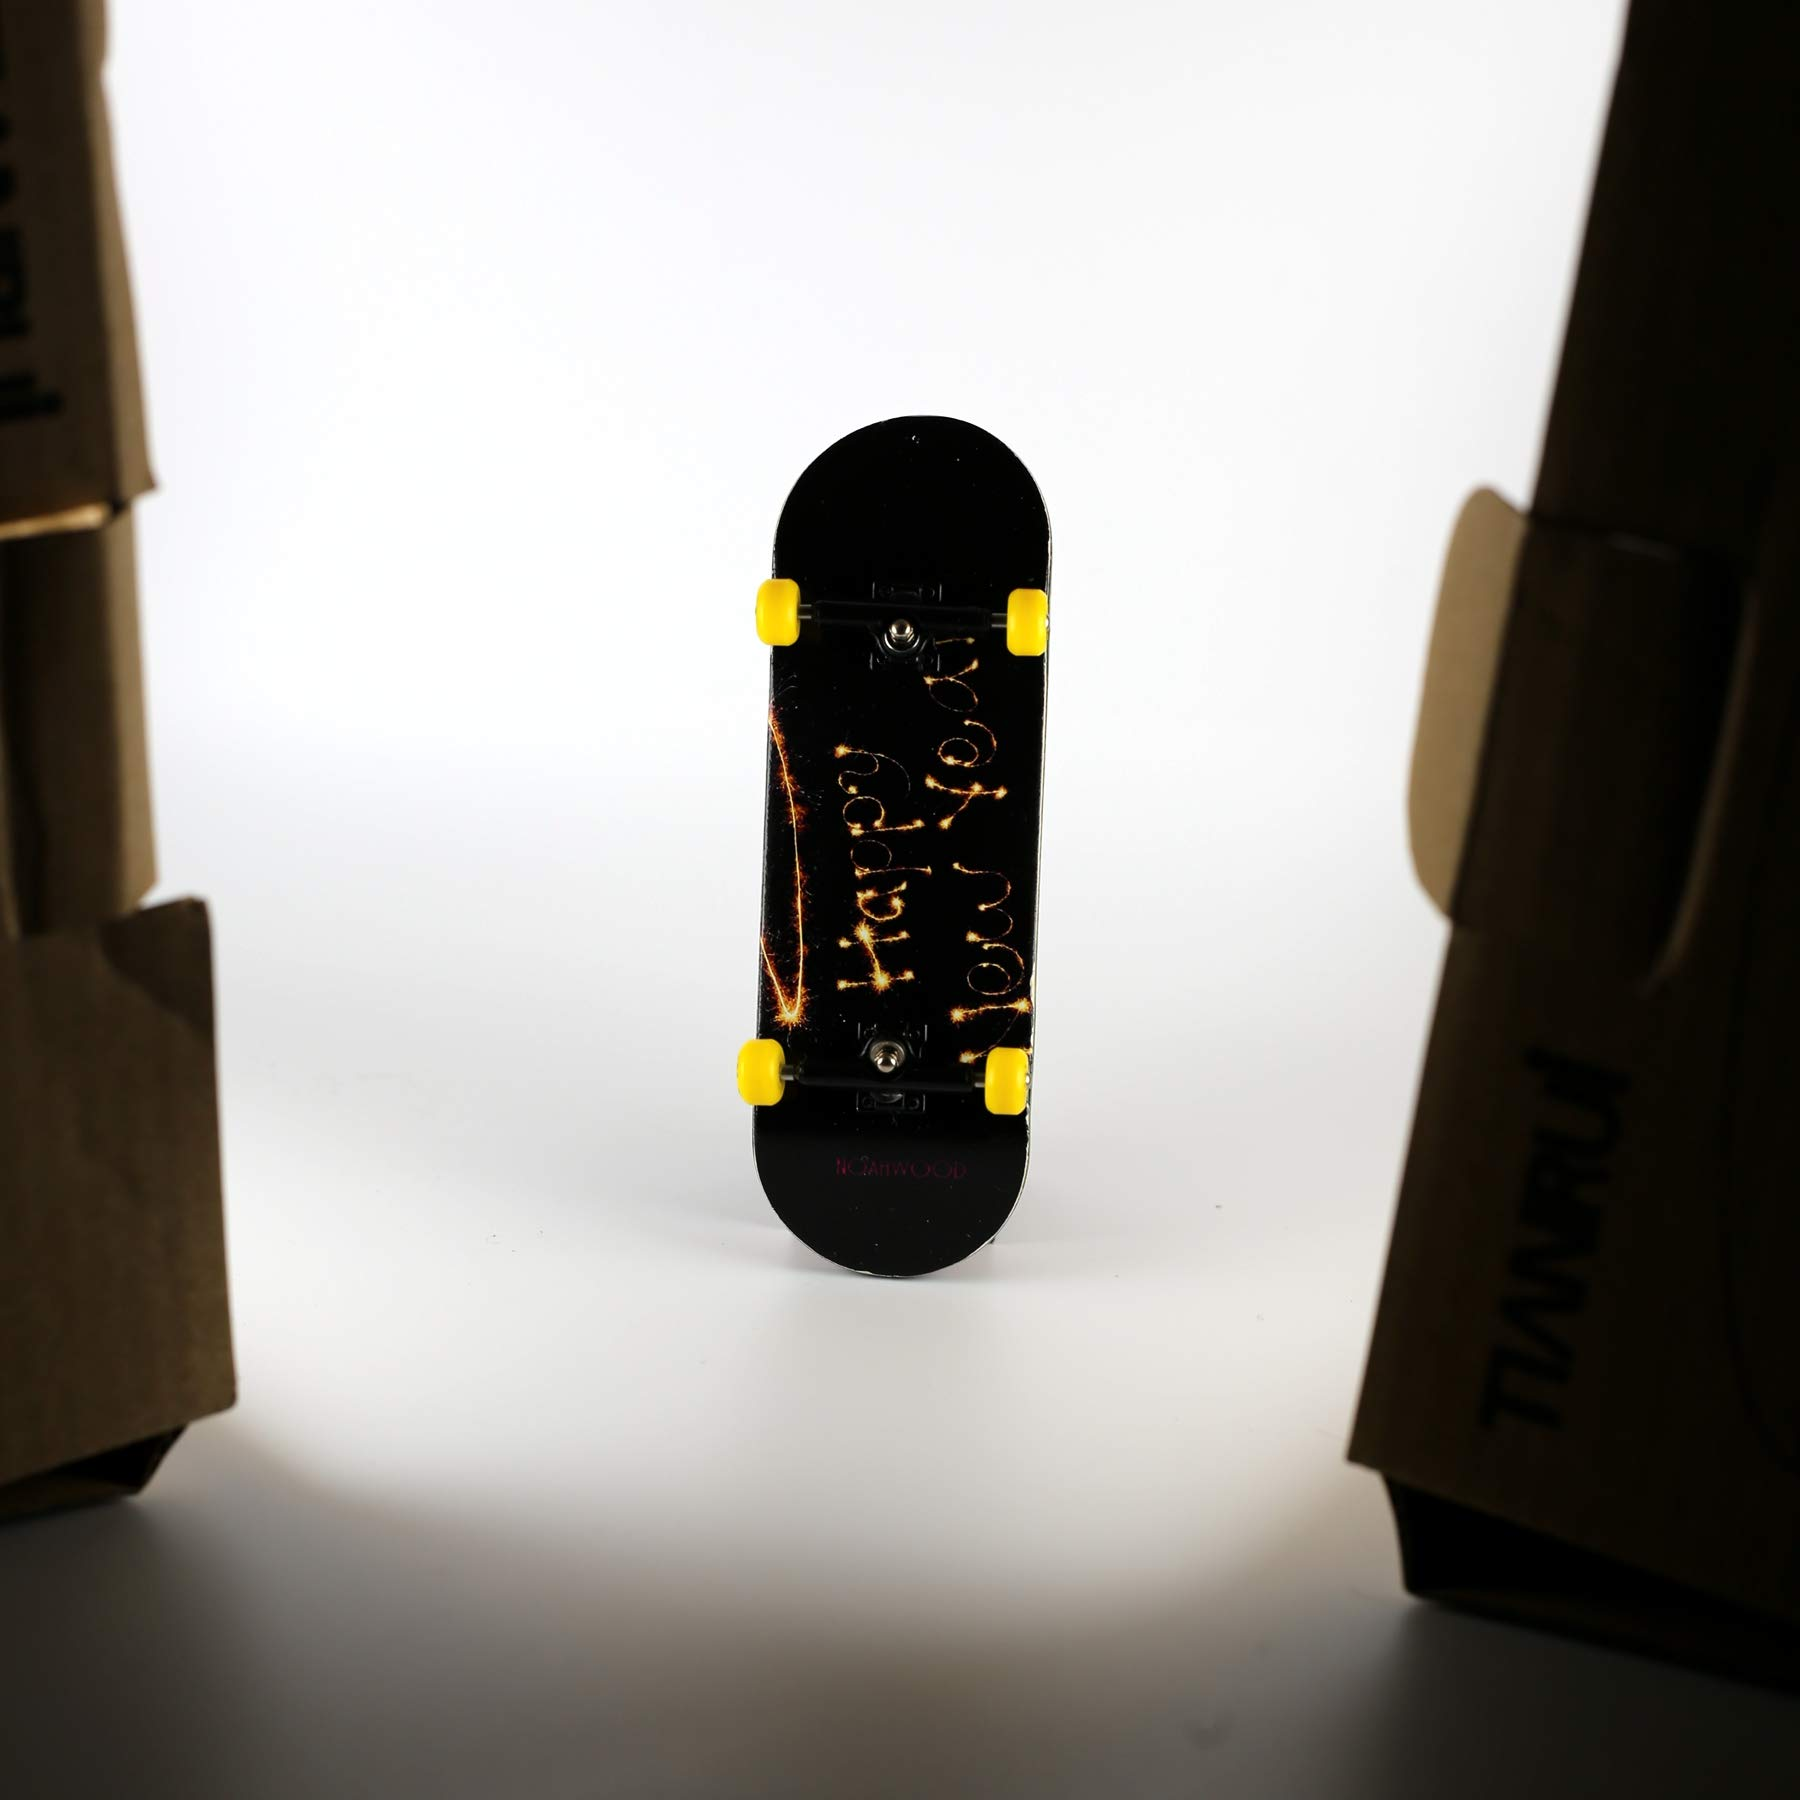 NOAHWOOD Wooden PRO Fingerboards (Deck,Truck,Wheel / a Set) (Happy New Year I) by NOAHWOOD (Image #7)